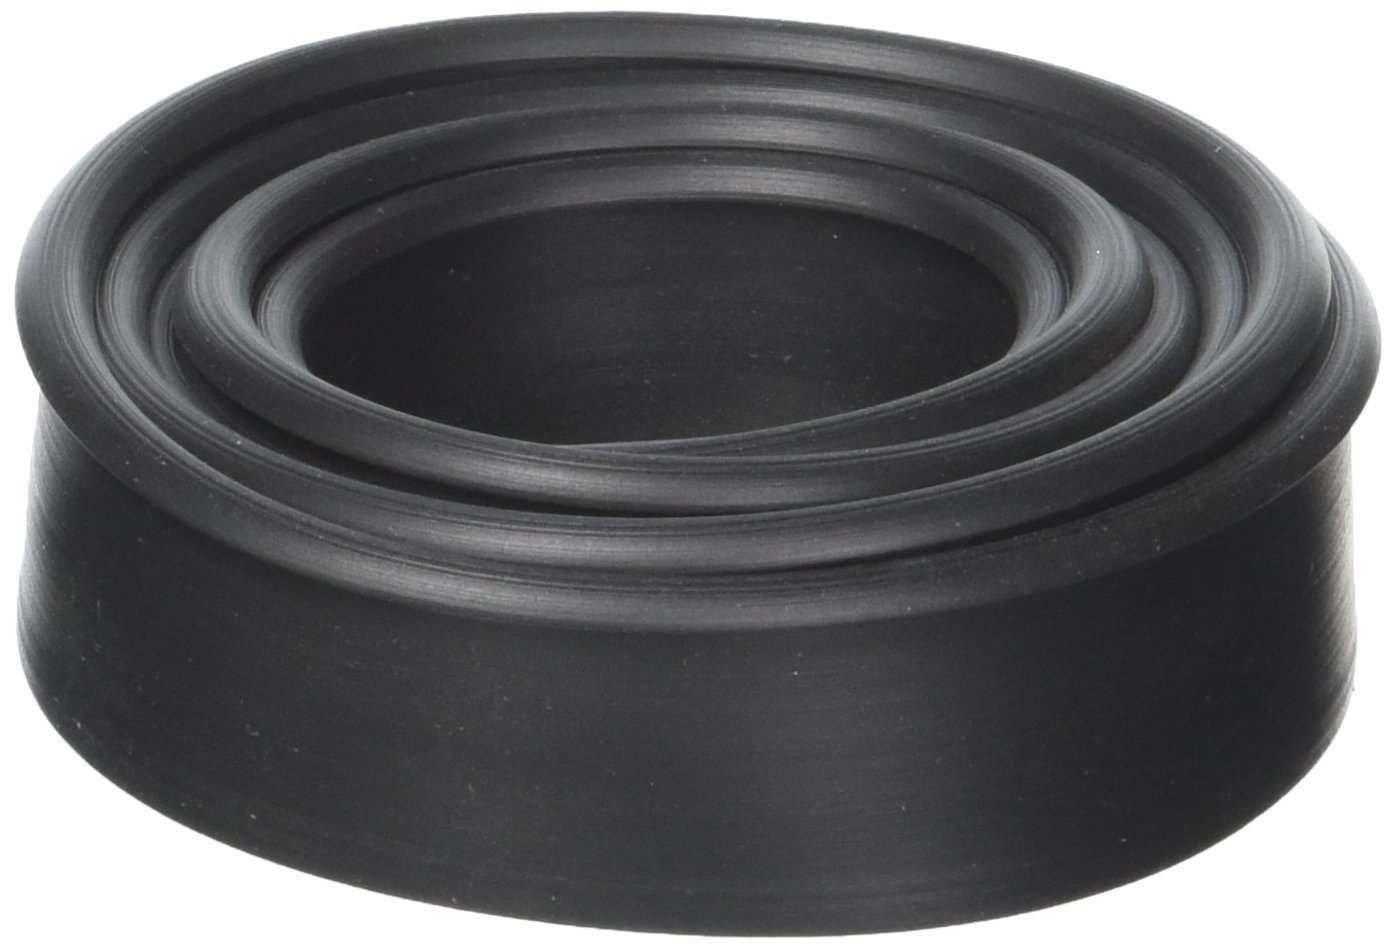 Cheap Curved Shower Door Seal Find Curved Shower Door Seal